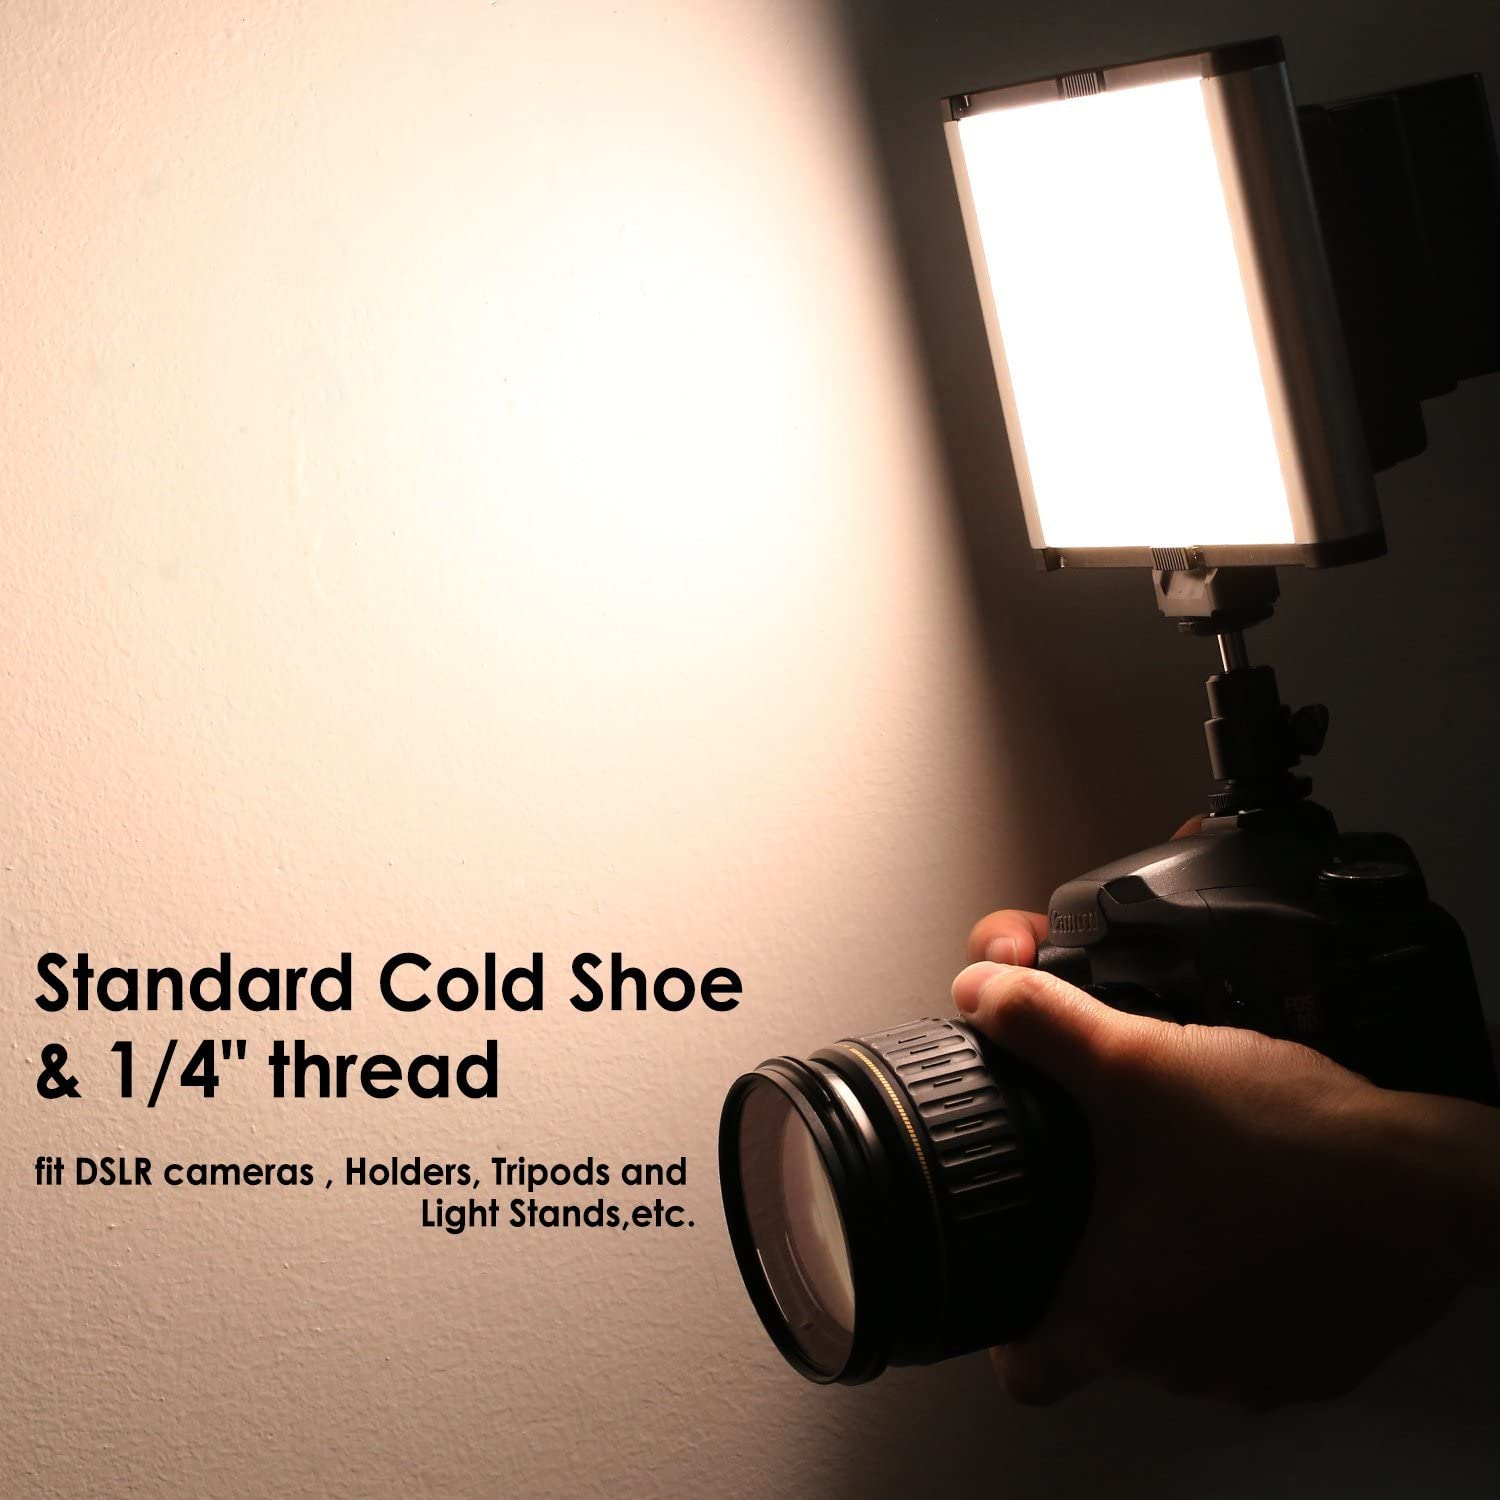 Dimmable Bi-Color LED Panel with Standard Cold Shoe for DSLR Cameras,280 LED Beads,3200-5600K,CRI 95+ Battery NOT Included Neewer LED Video Light